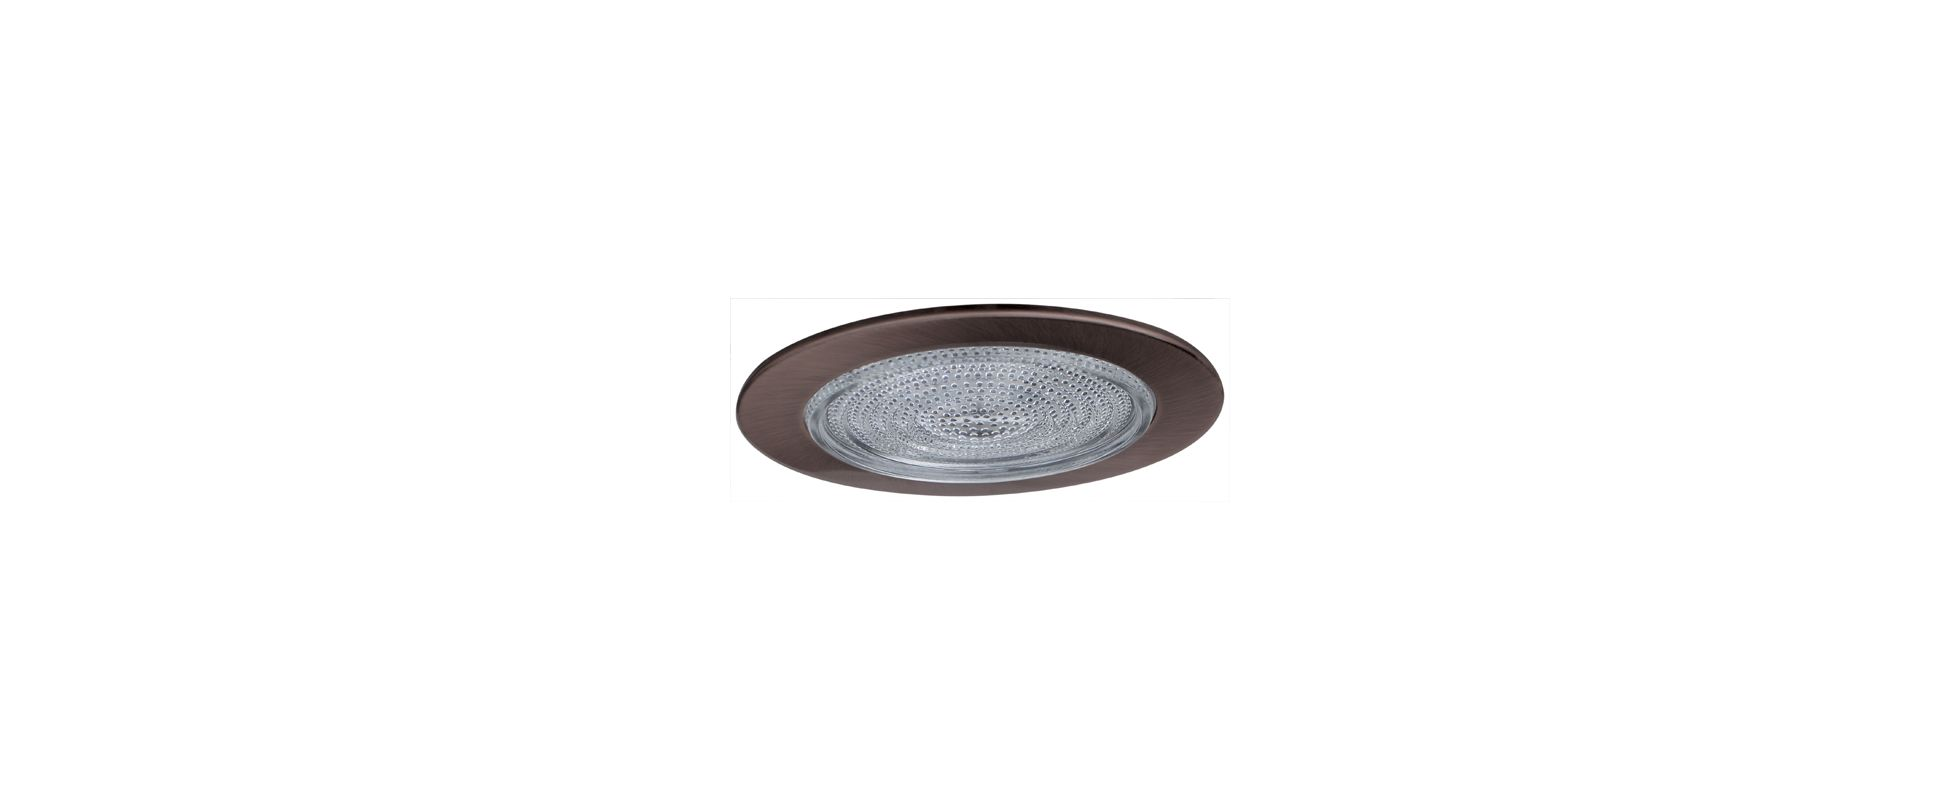 "Elco EL913 4"" Shower Trim with Fresnel Lens Bronze Recessed Lights"